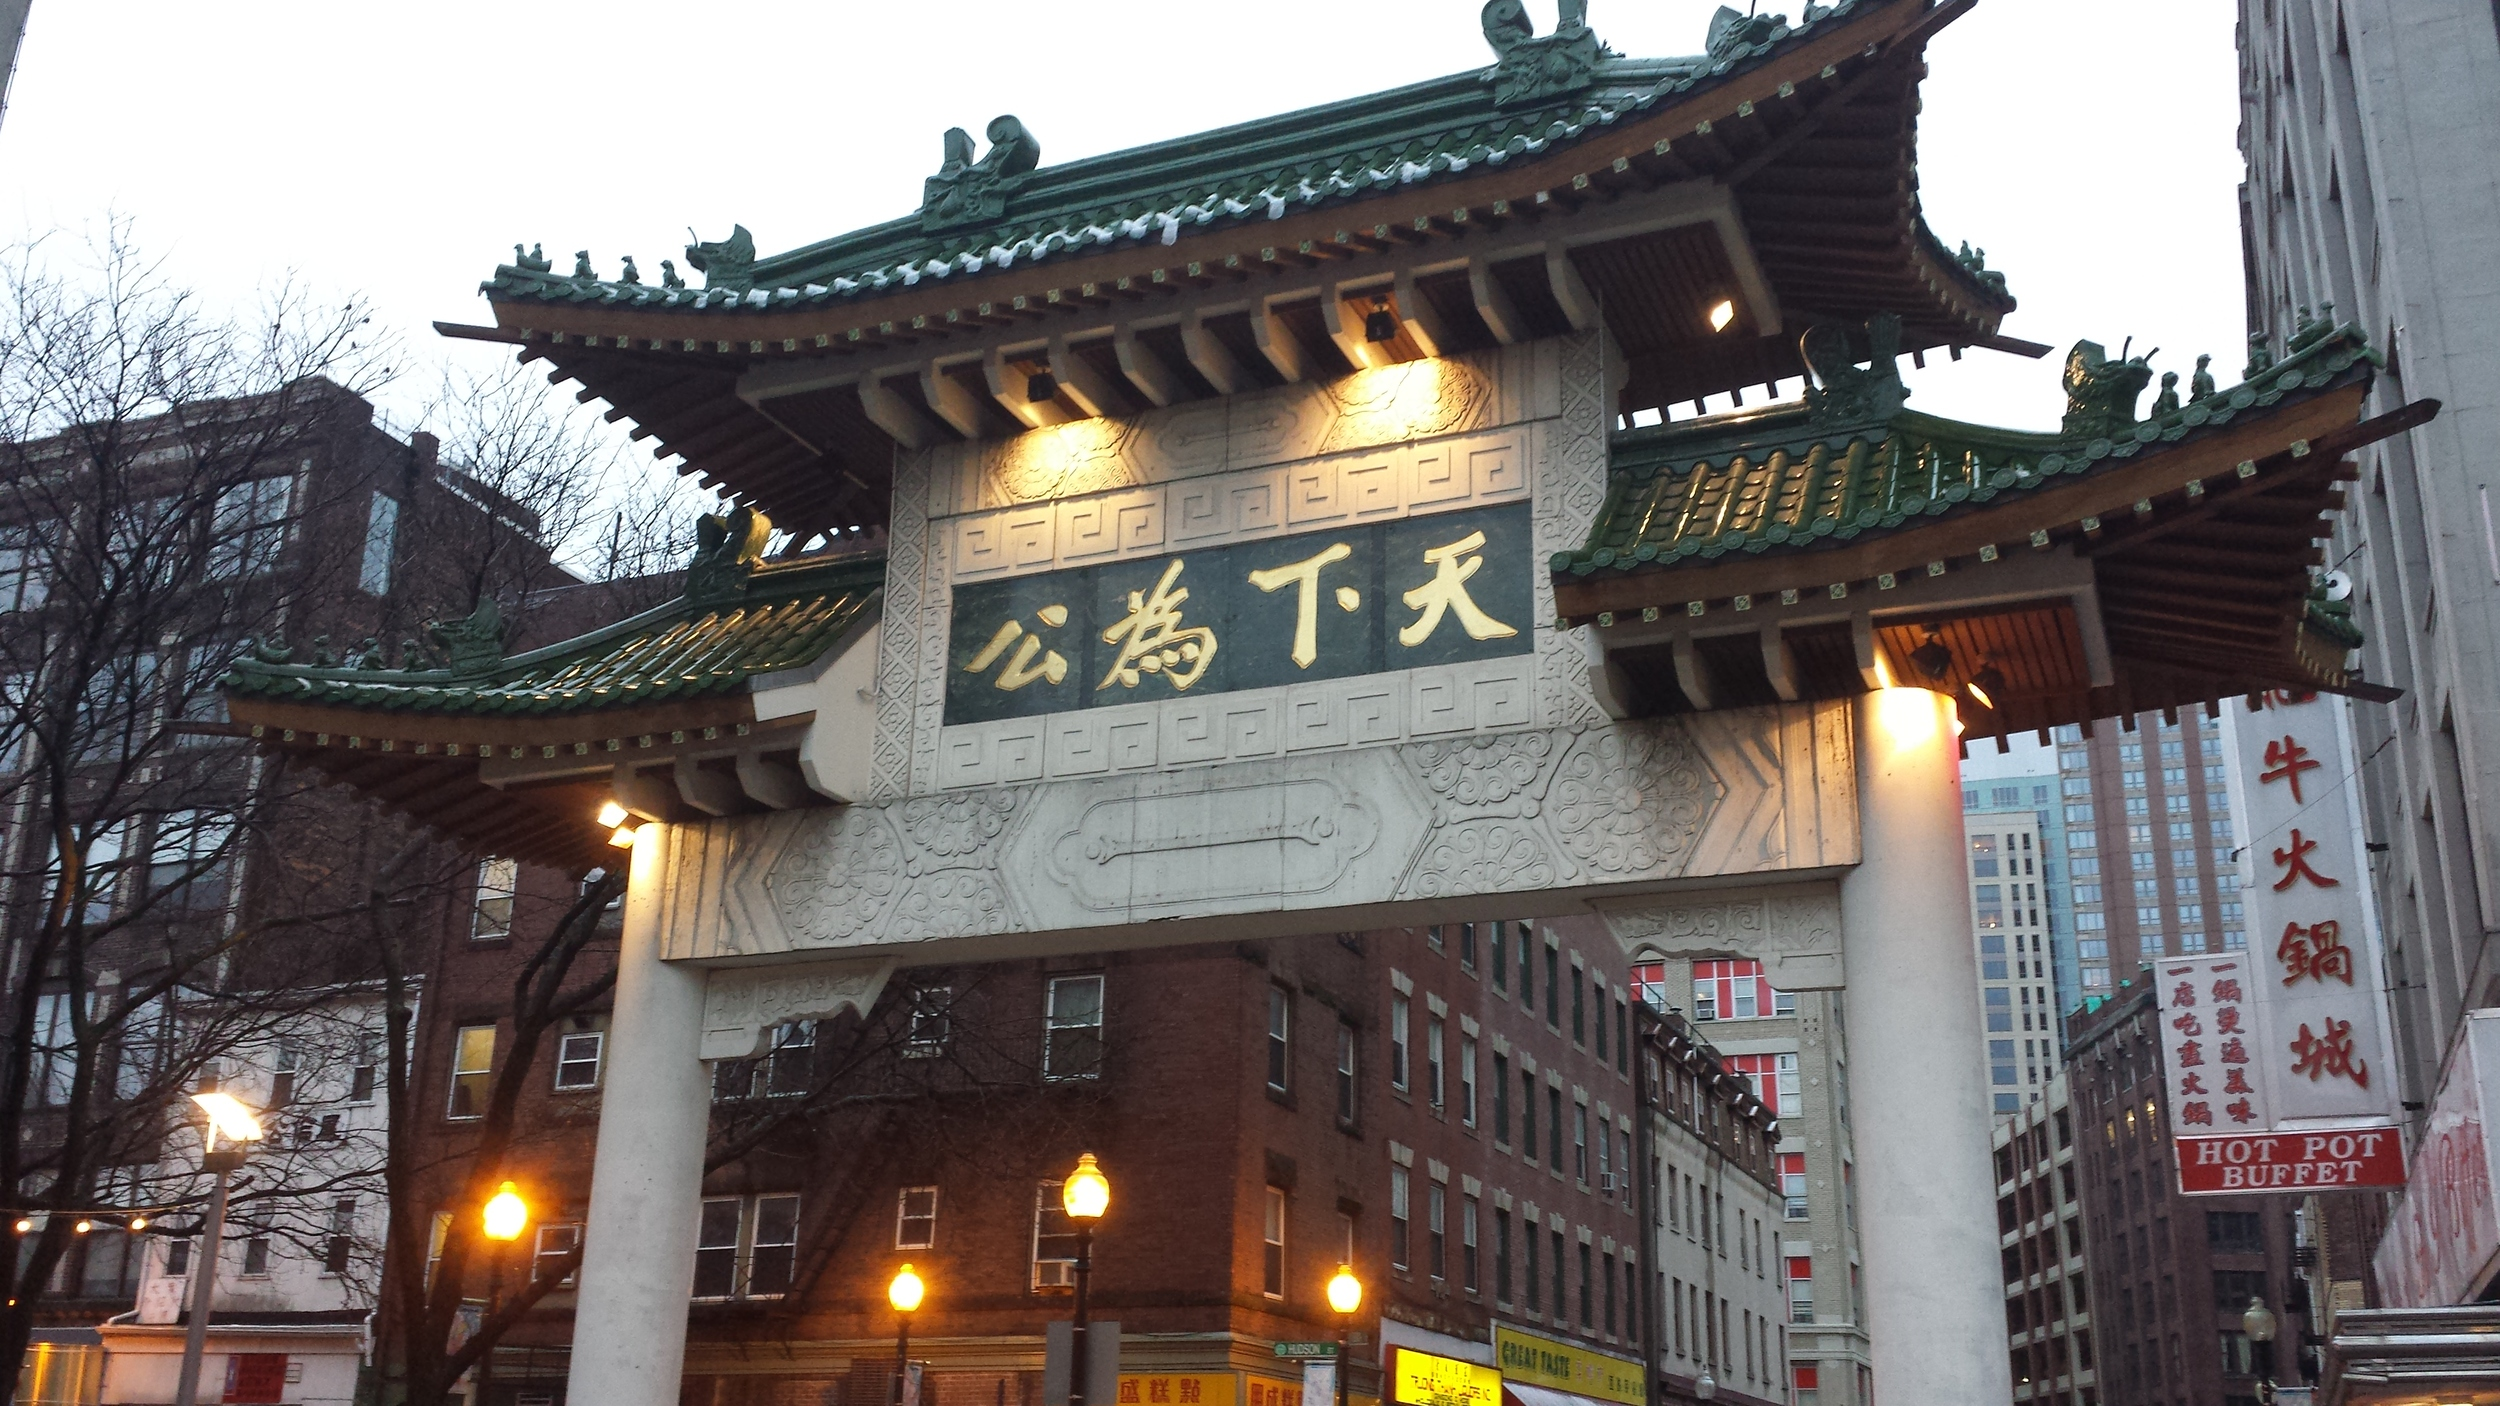 Boston's Chinatown